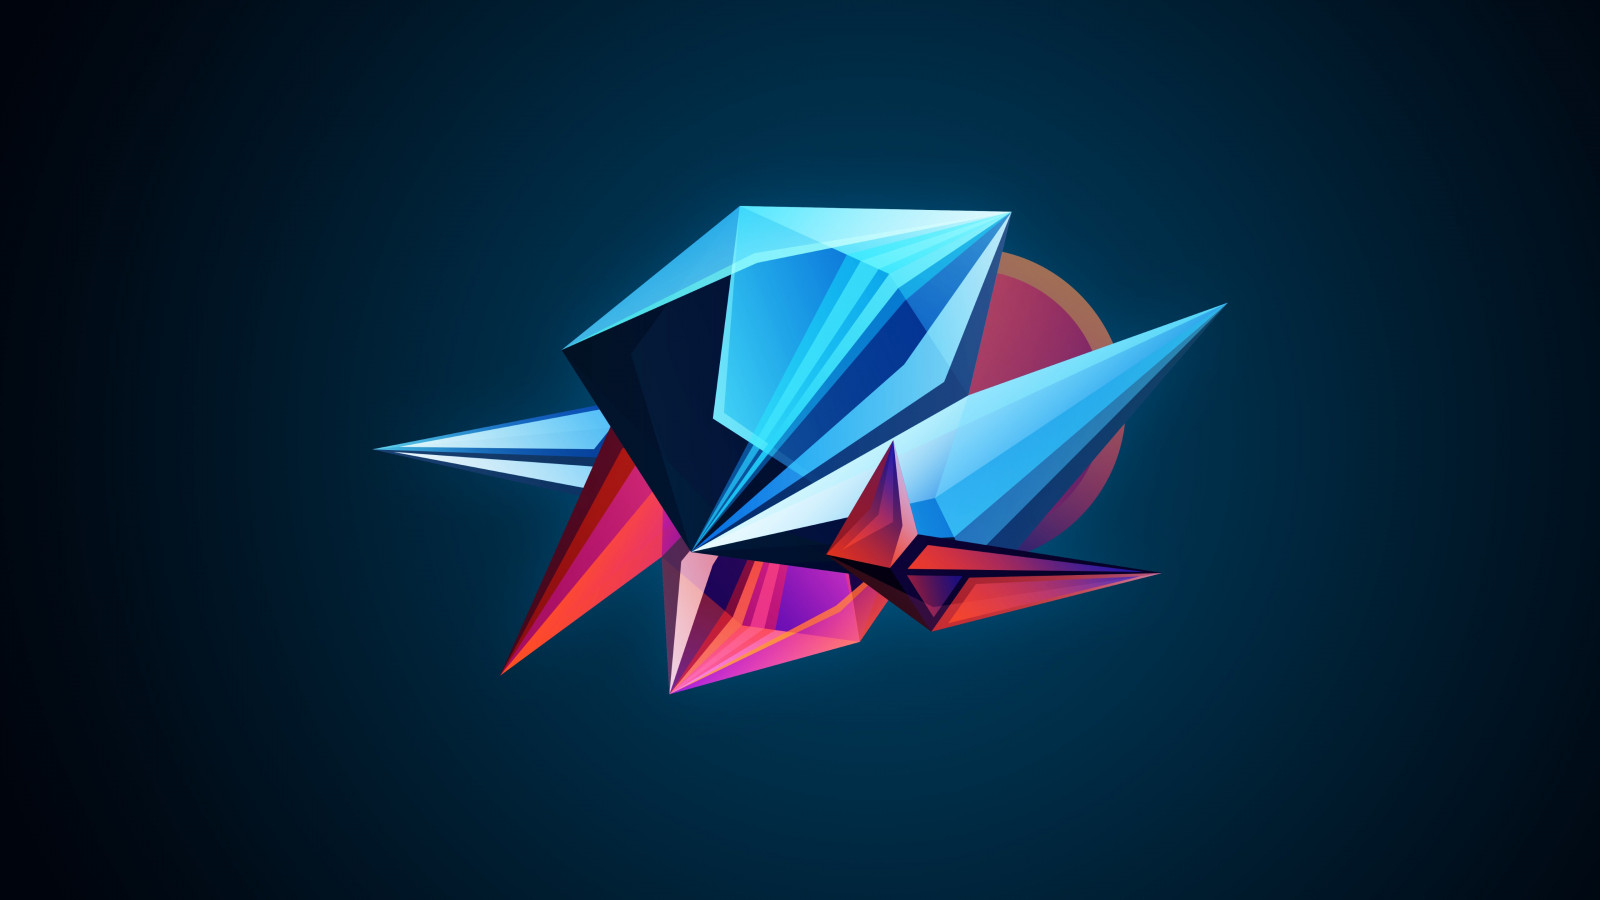 Abstract 3D shapes wallpaper 1600x900